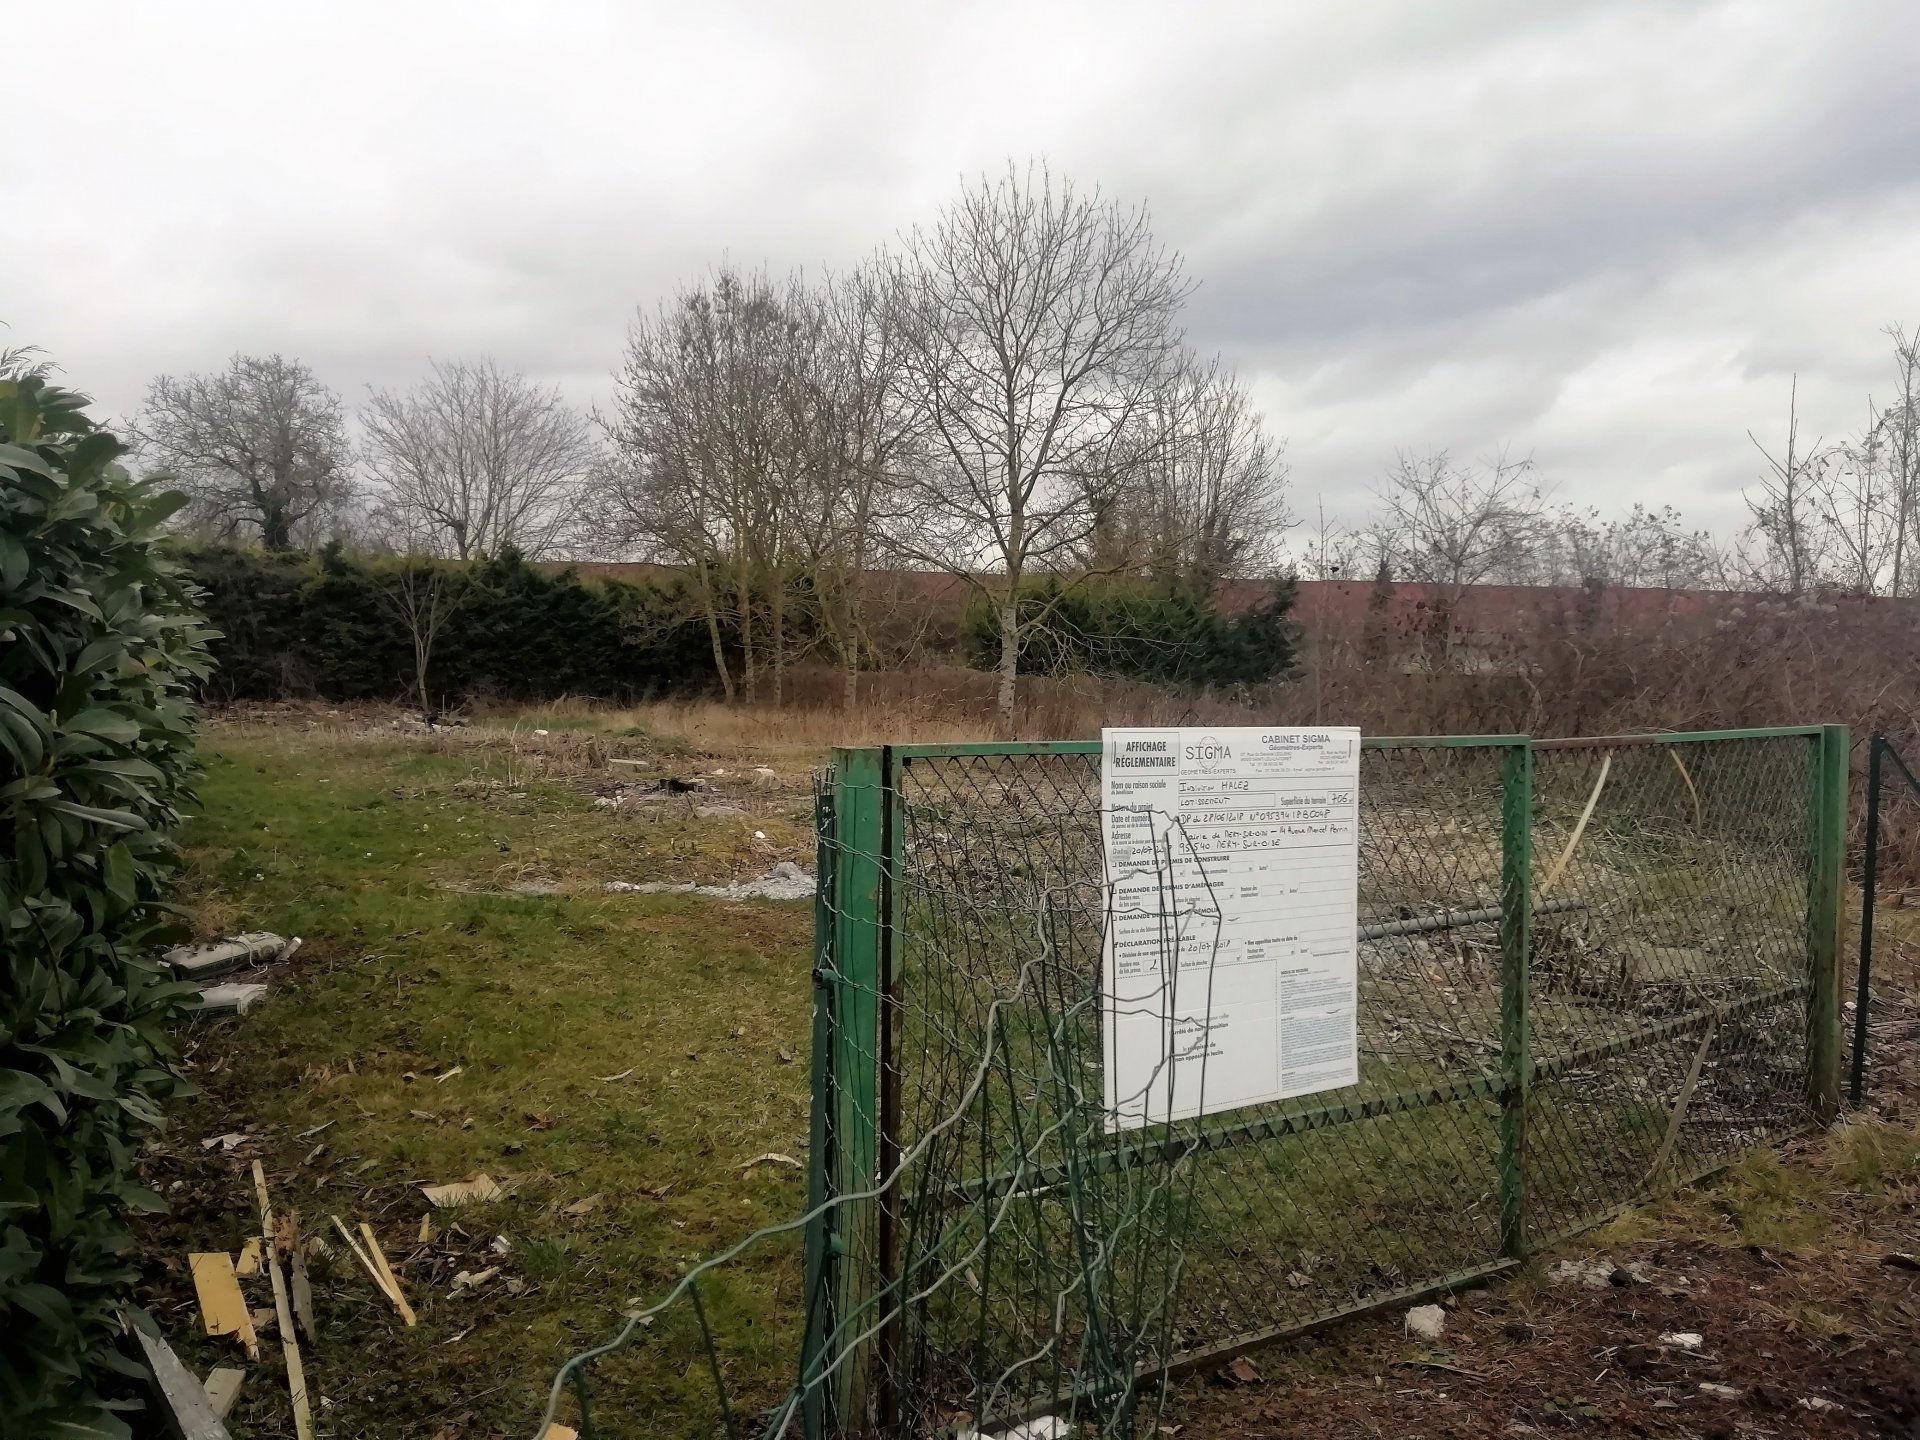 Sale Building land - Mery Sur Oise